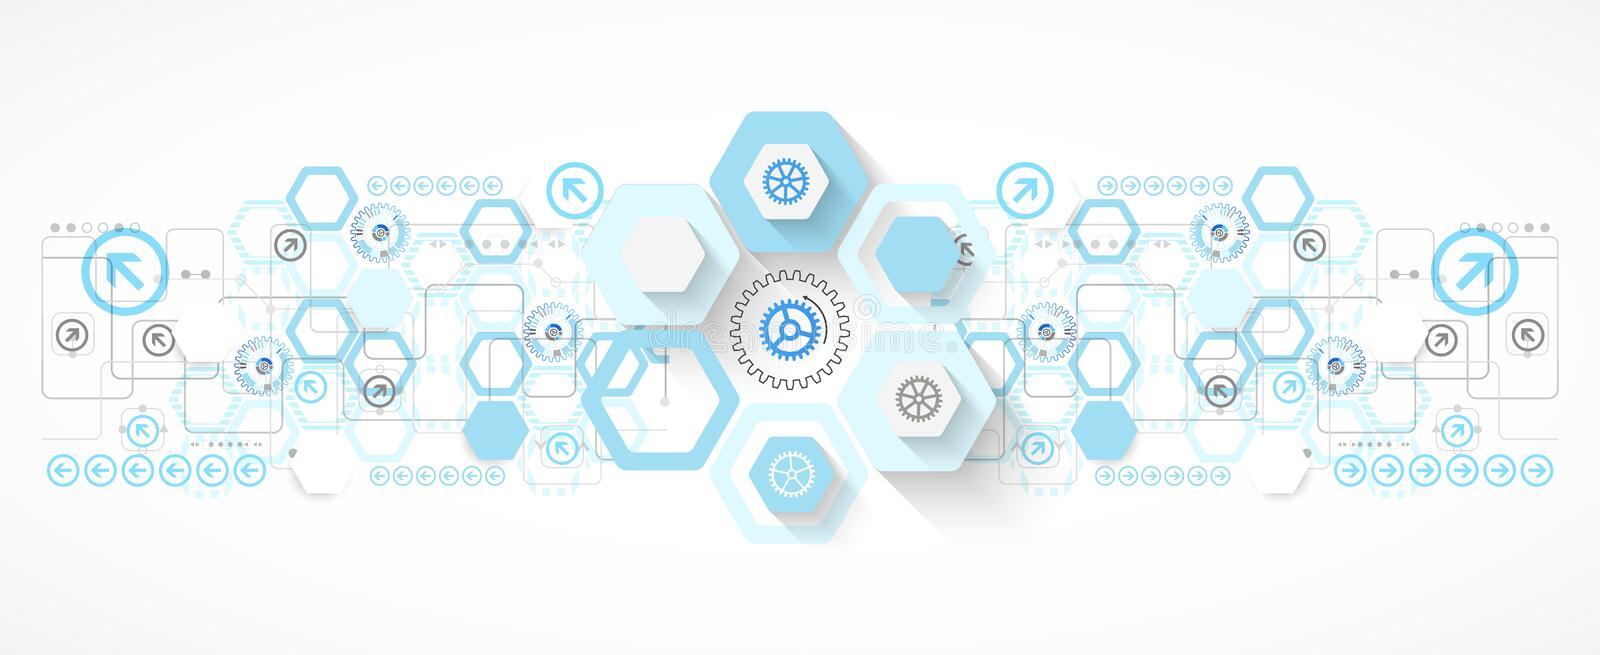 Abstract blue hexagon futuristic background for design works vector illustration